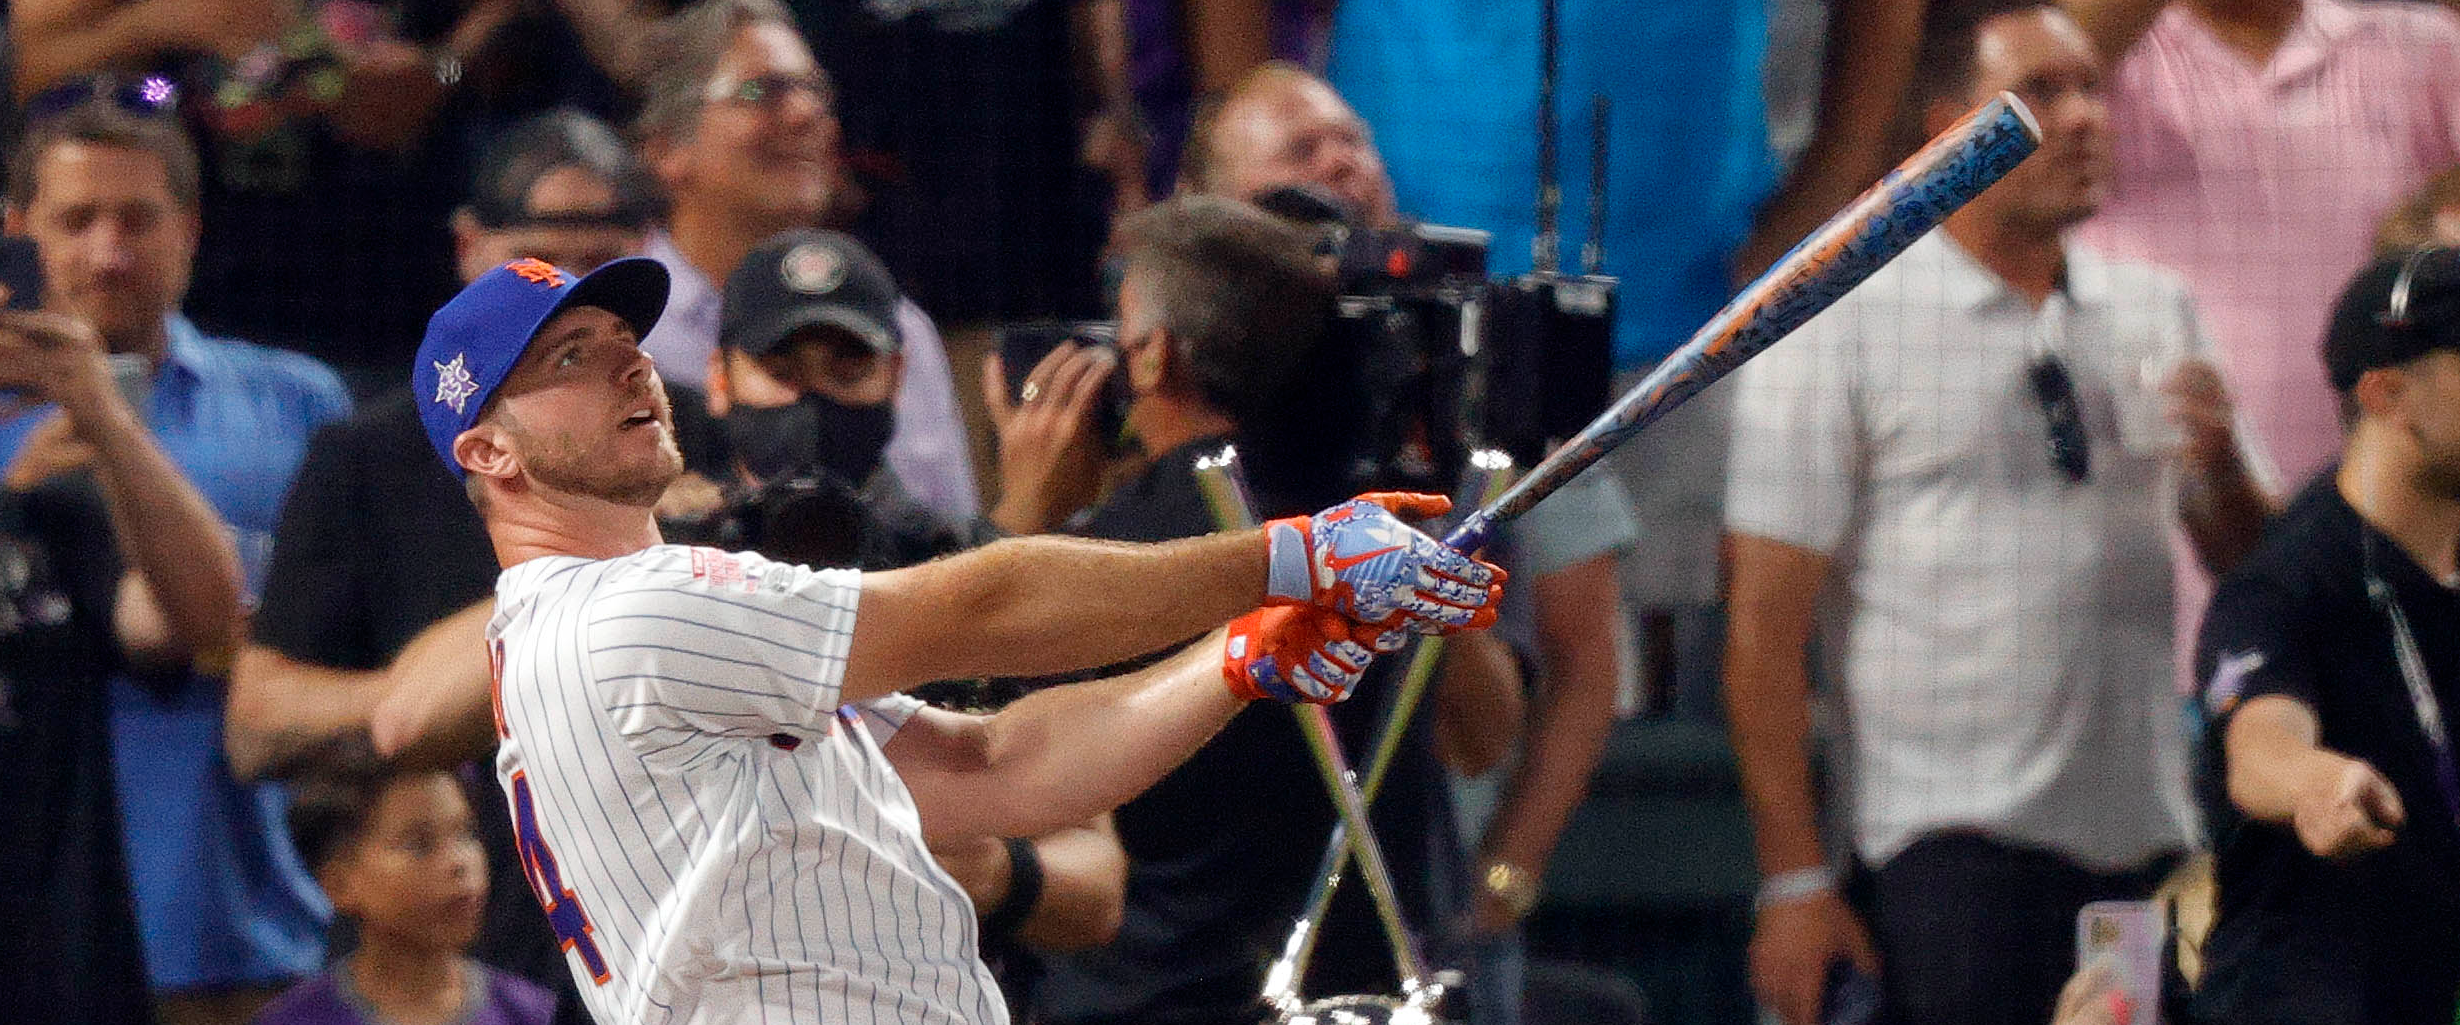 Pete Alonso Goes Back-to-Back in Home Run Derby